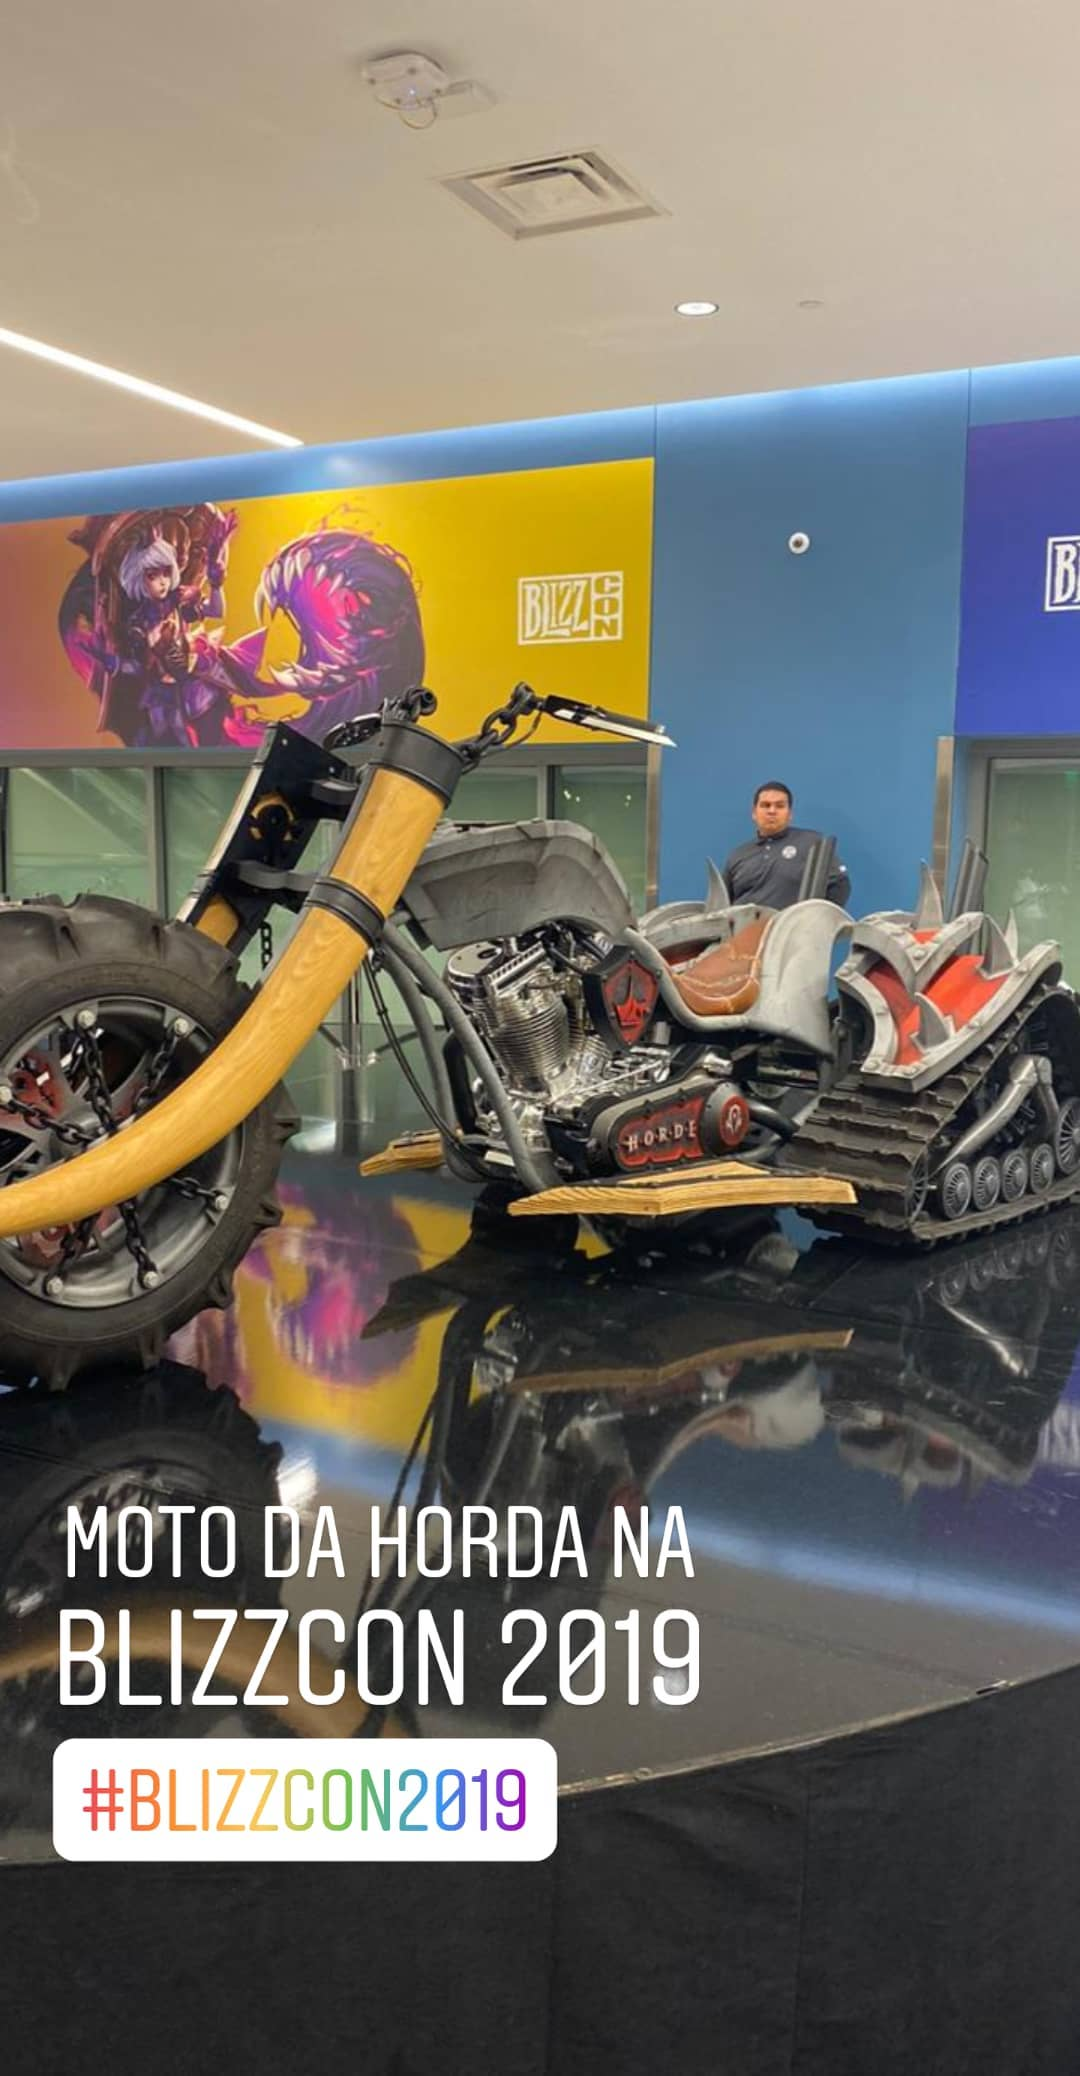 Motos de World of Warcraft na Blizcon 2019 - 02